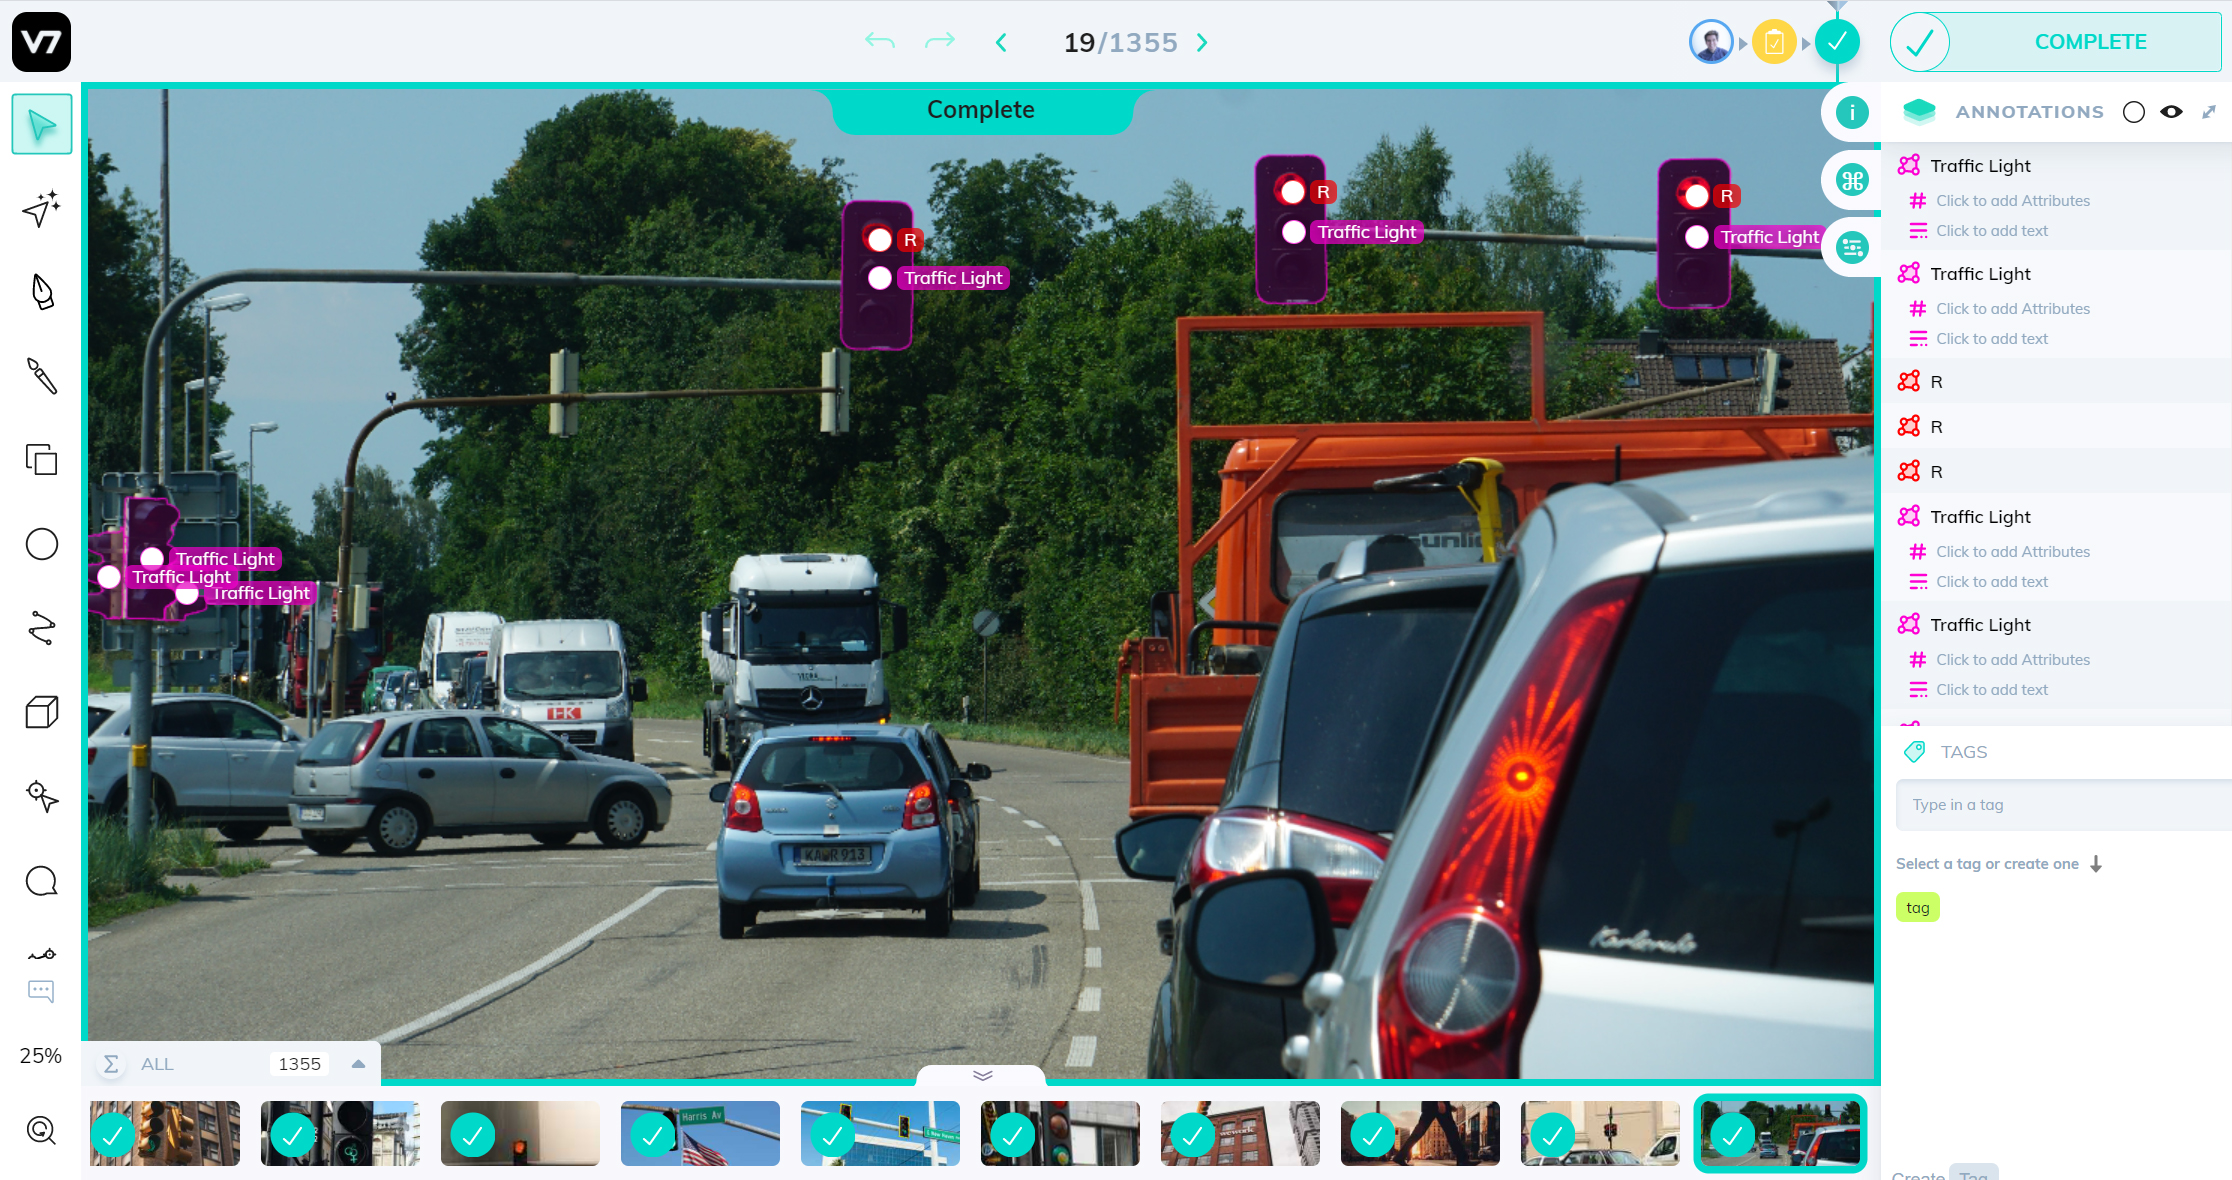 Traffic lights image annotation with V7